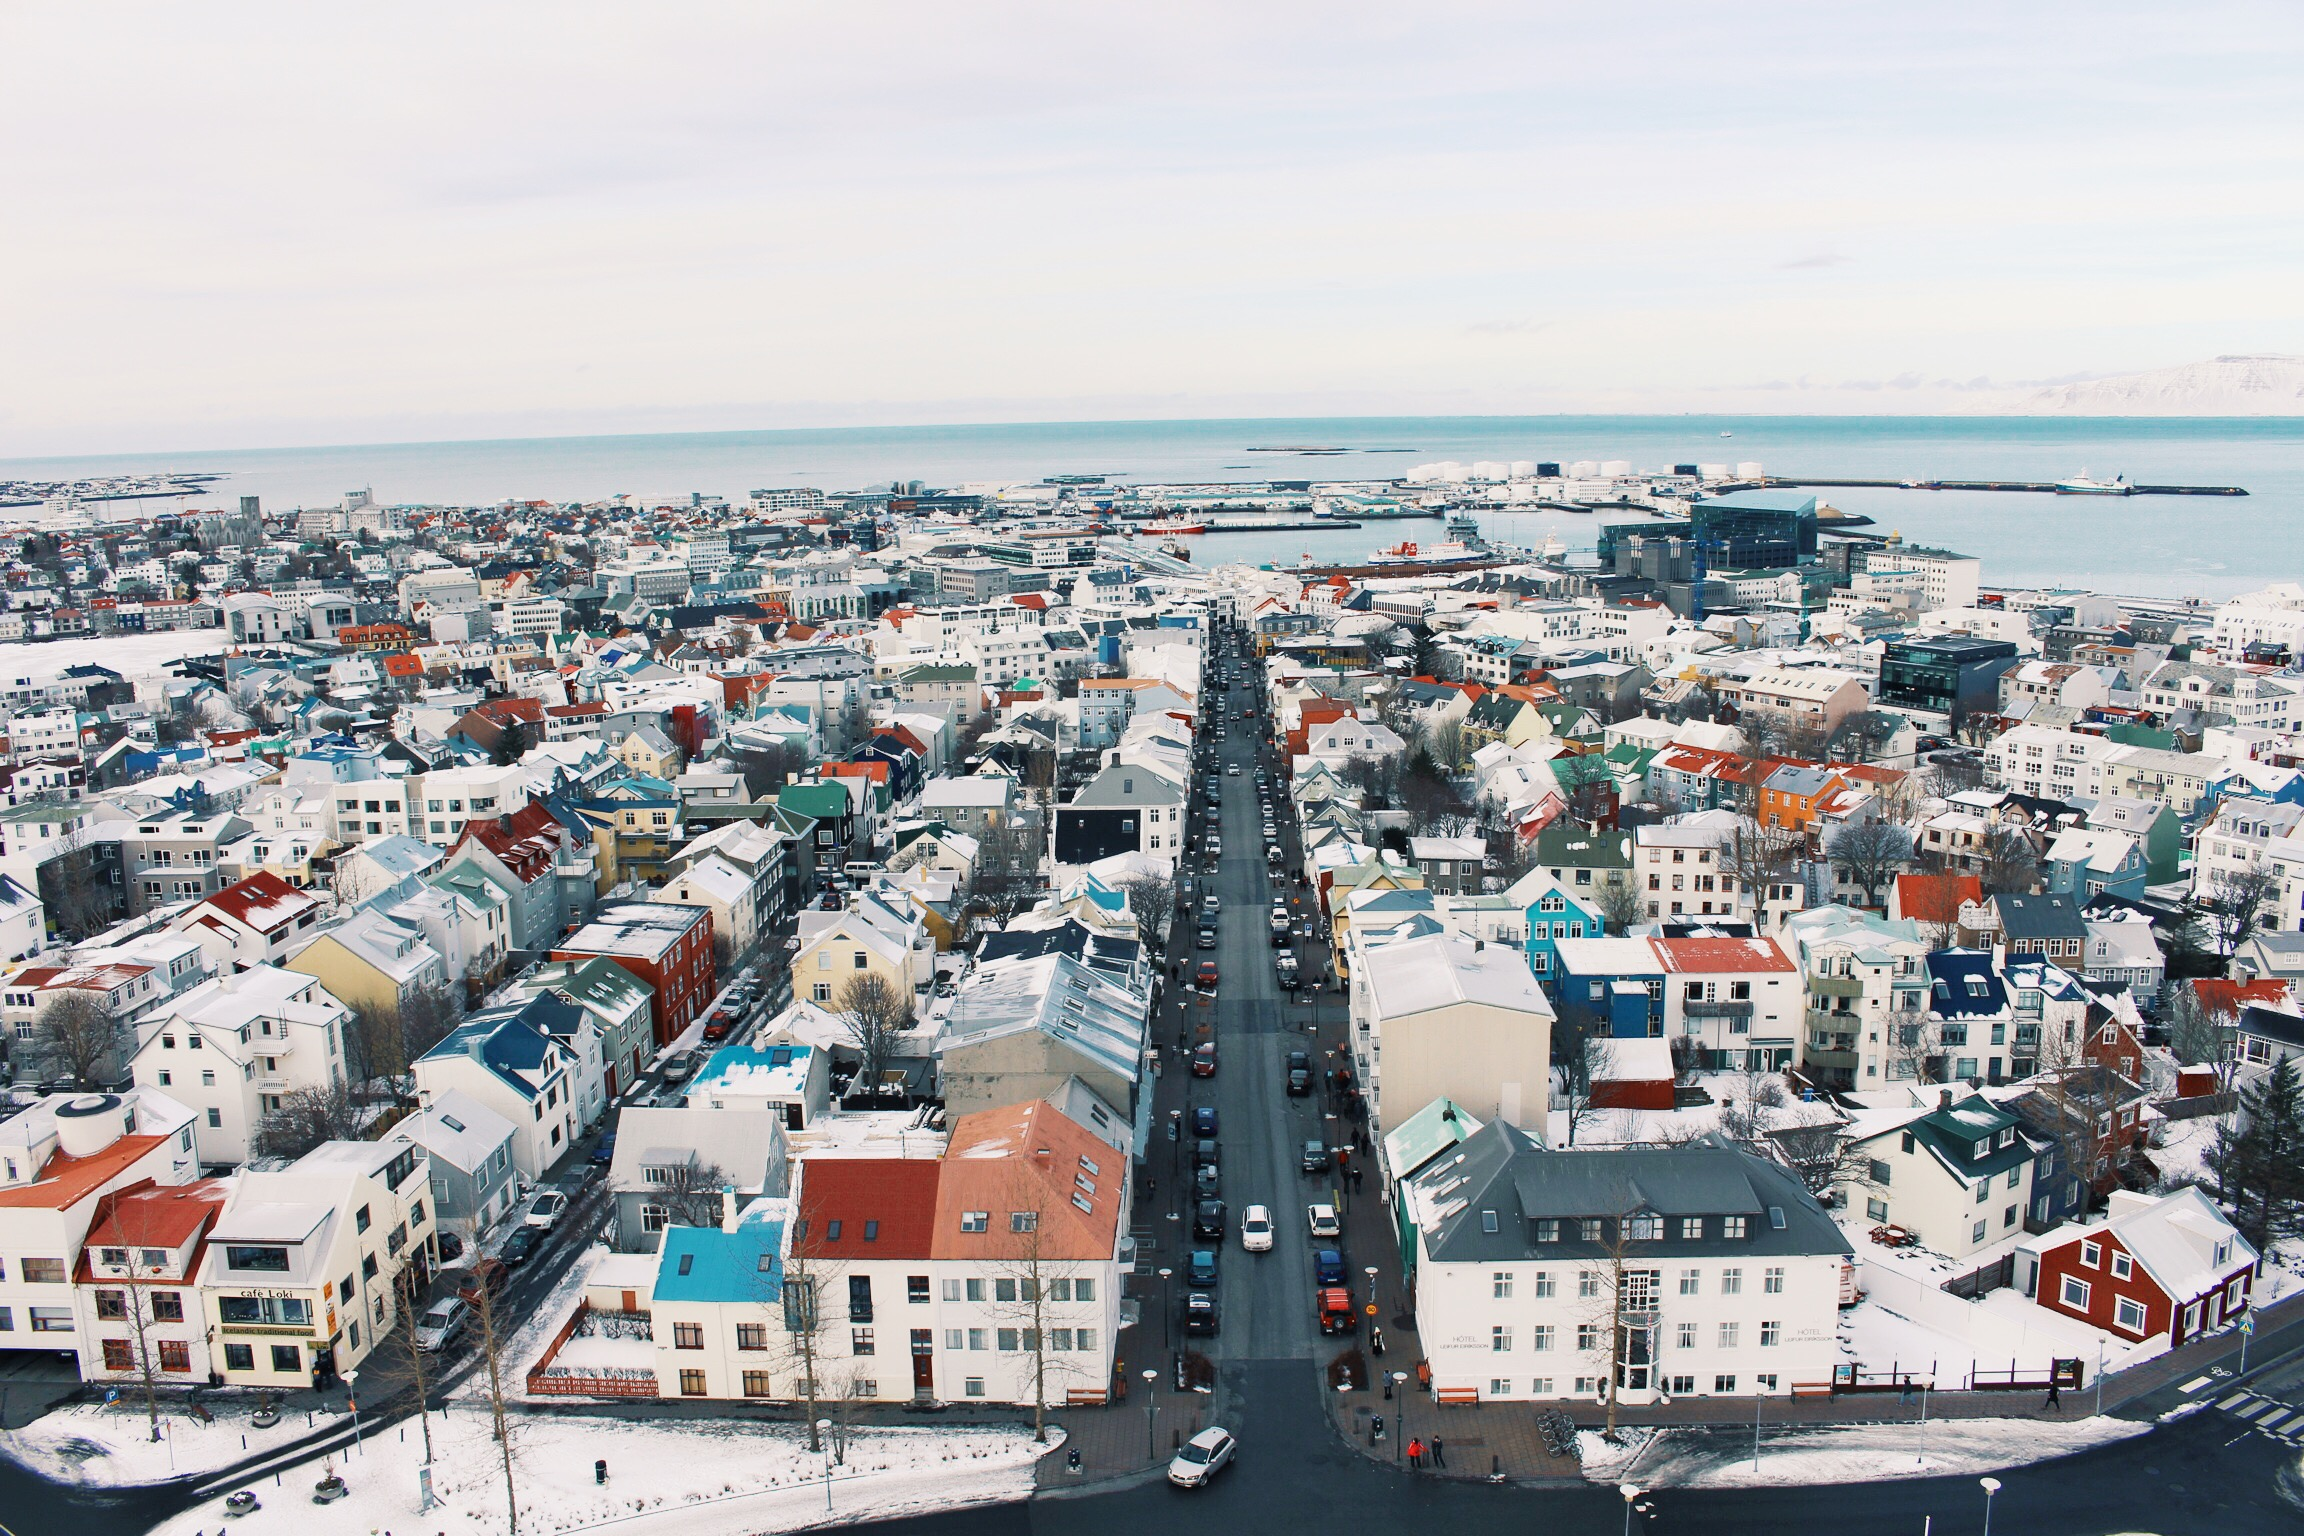 The iconic view over Reykjavik, from the top of Hallgrímskirkja church. Photo: Connected to India